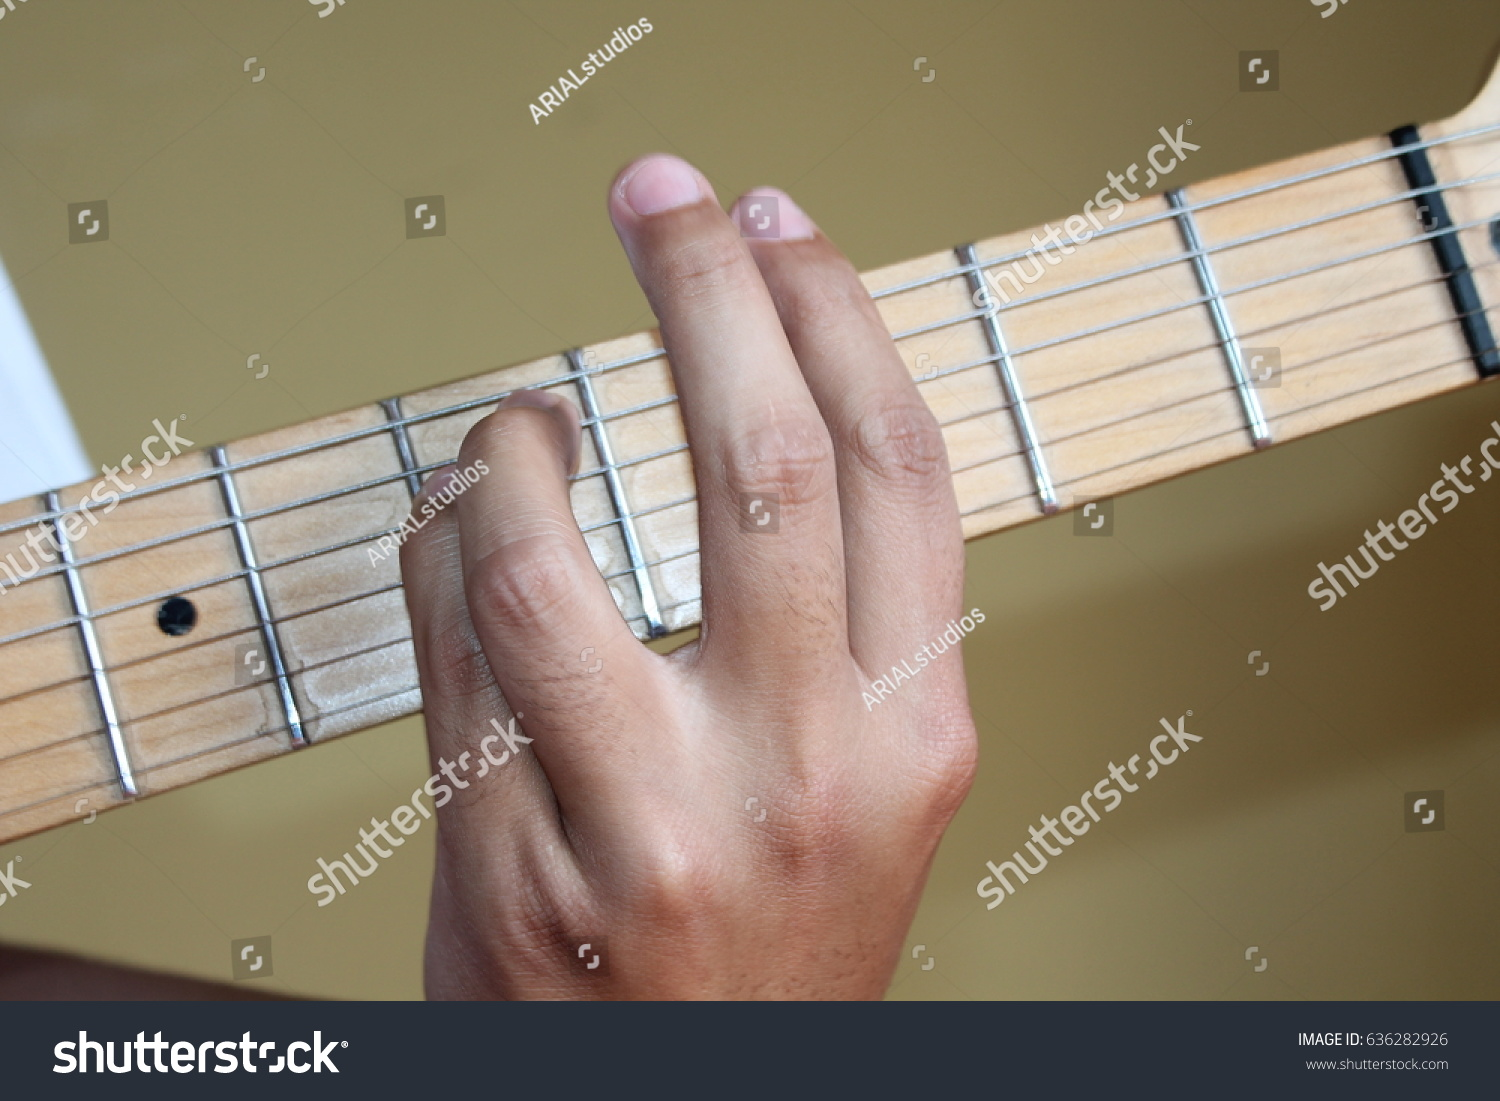 Chord Gm Guitar Closeup Stock Photo Edit Now 636282926 Shutterstock